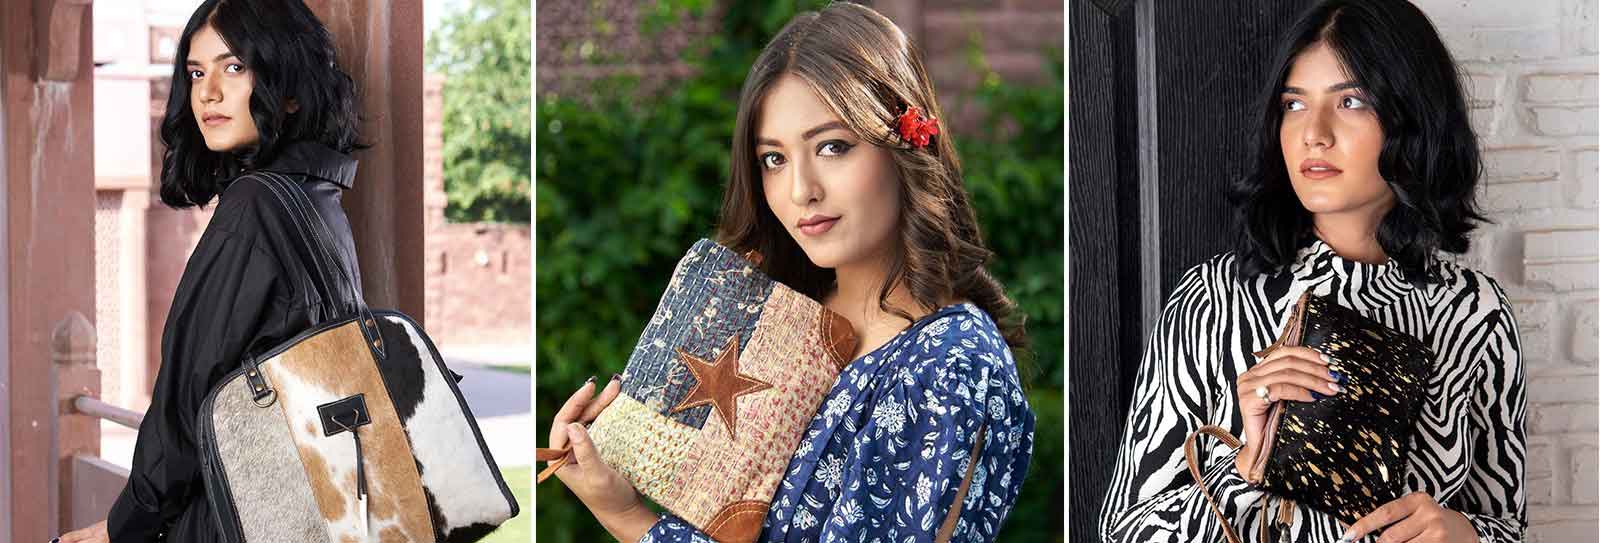 bhrayna bags handmade leather bags and accessories